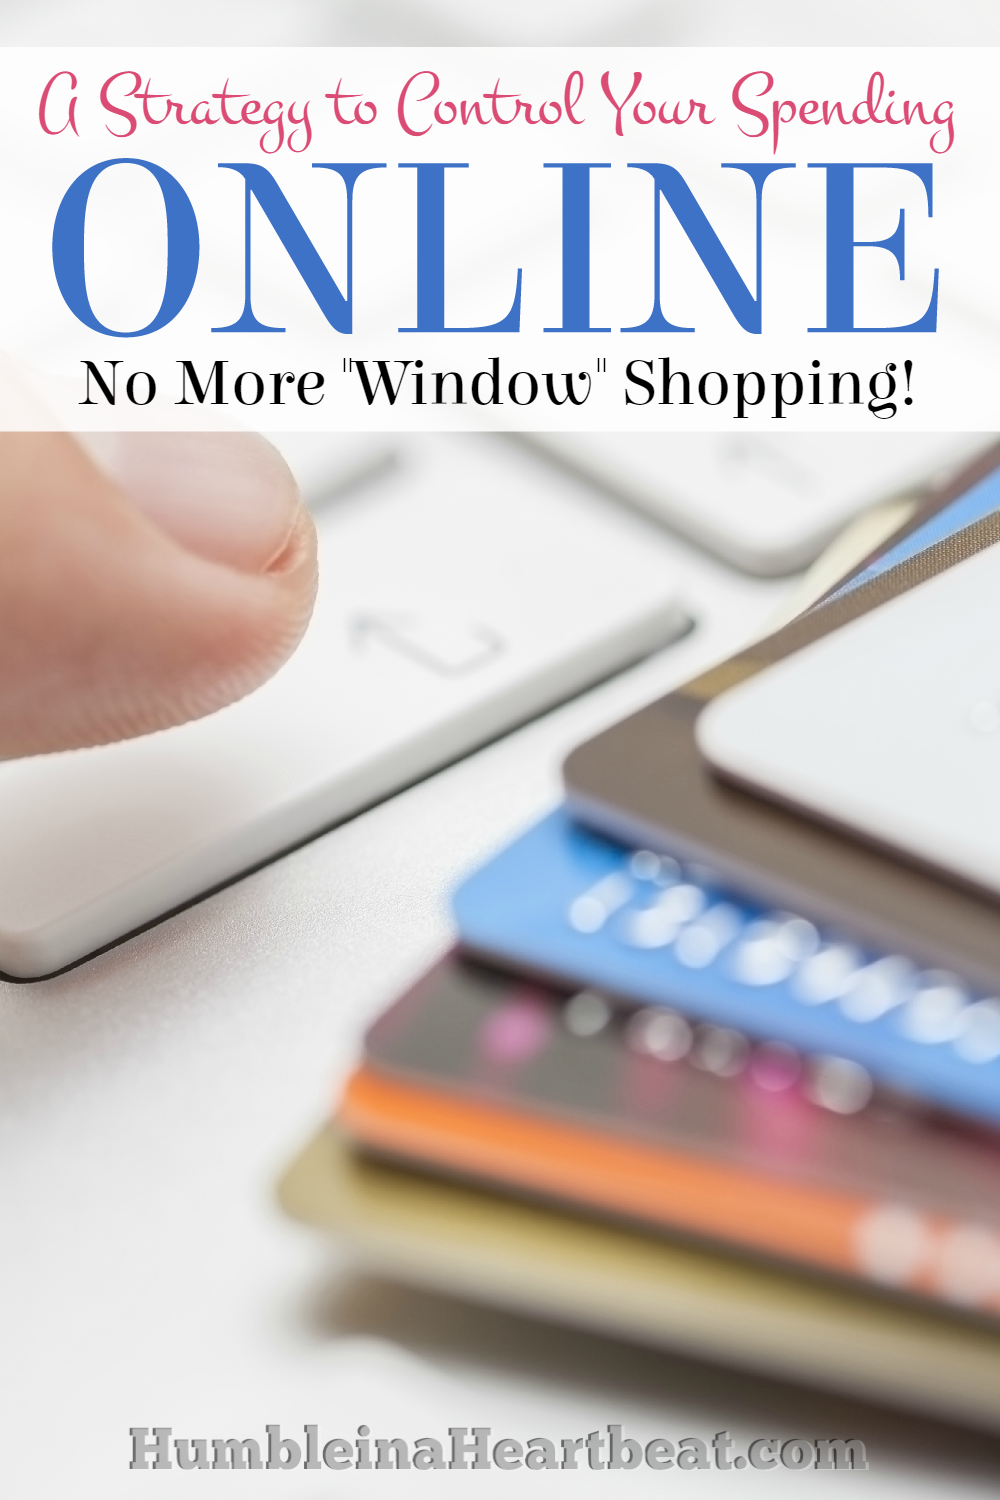 The habit of online shopping can snatch the best of us. Don't let it get you! Be aware of your online browsing and cut it out of your life if you're spending too much.